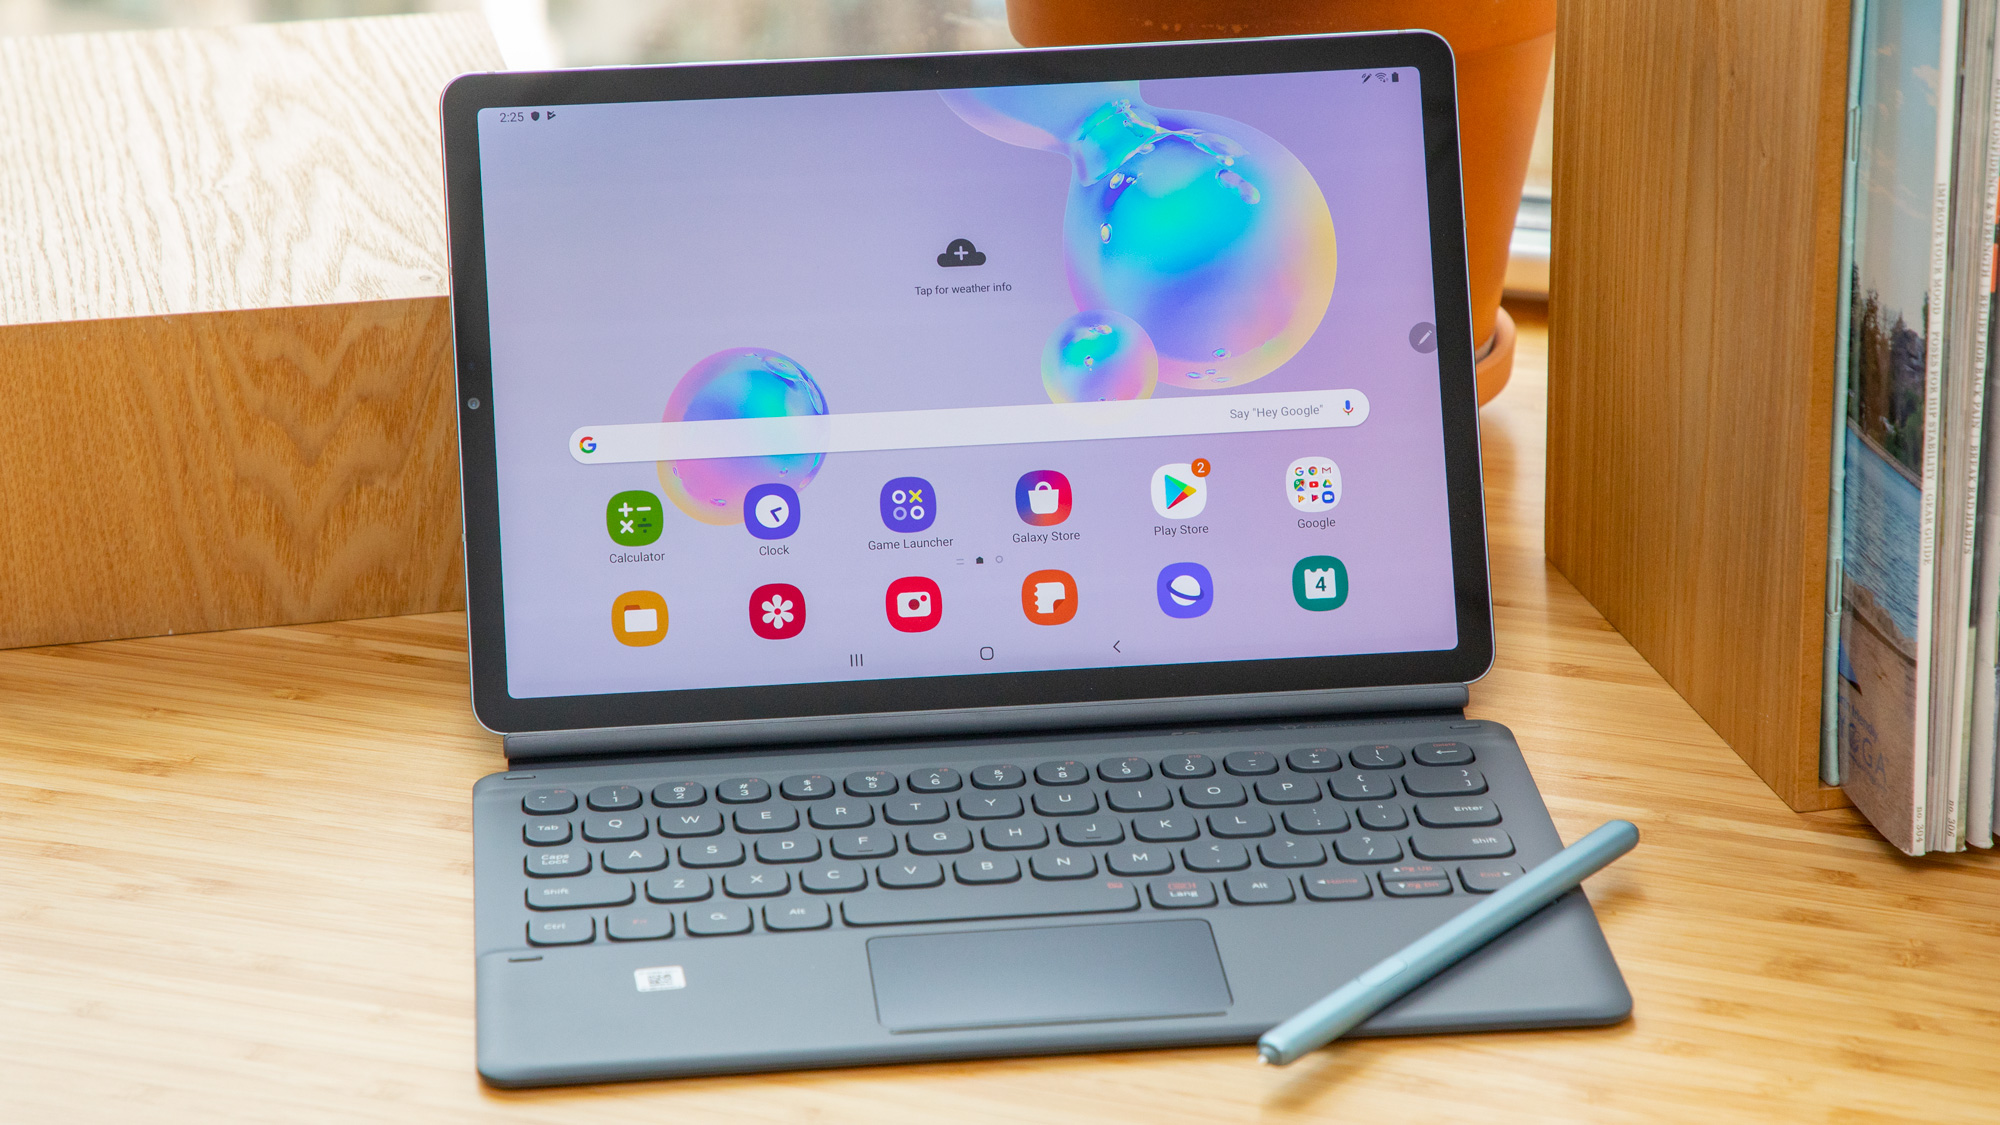 Samsung Galaxy Tab S6 Lite all but confirmed to be on the way